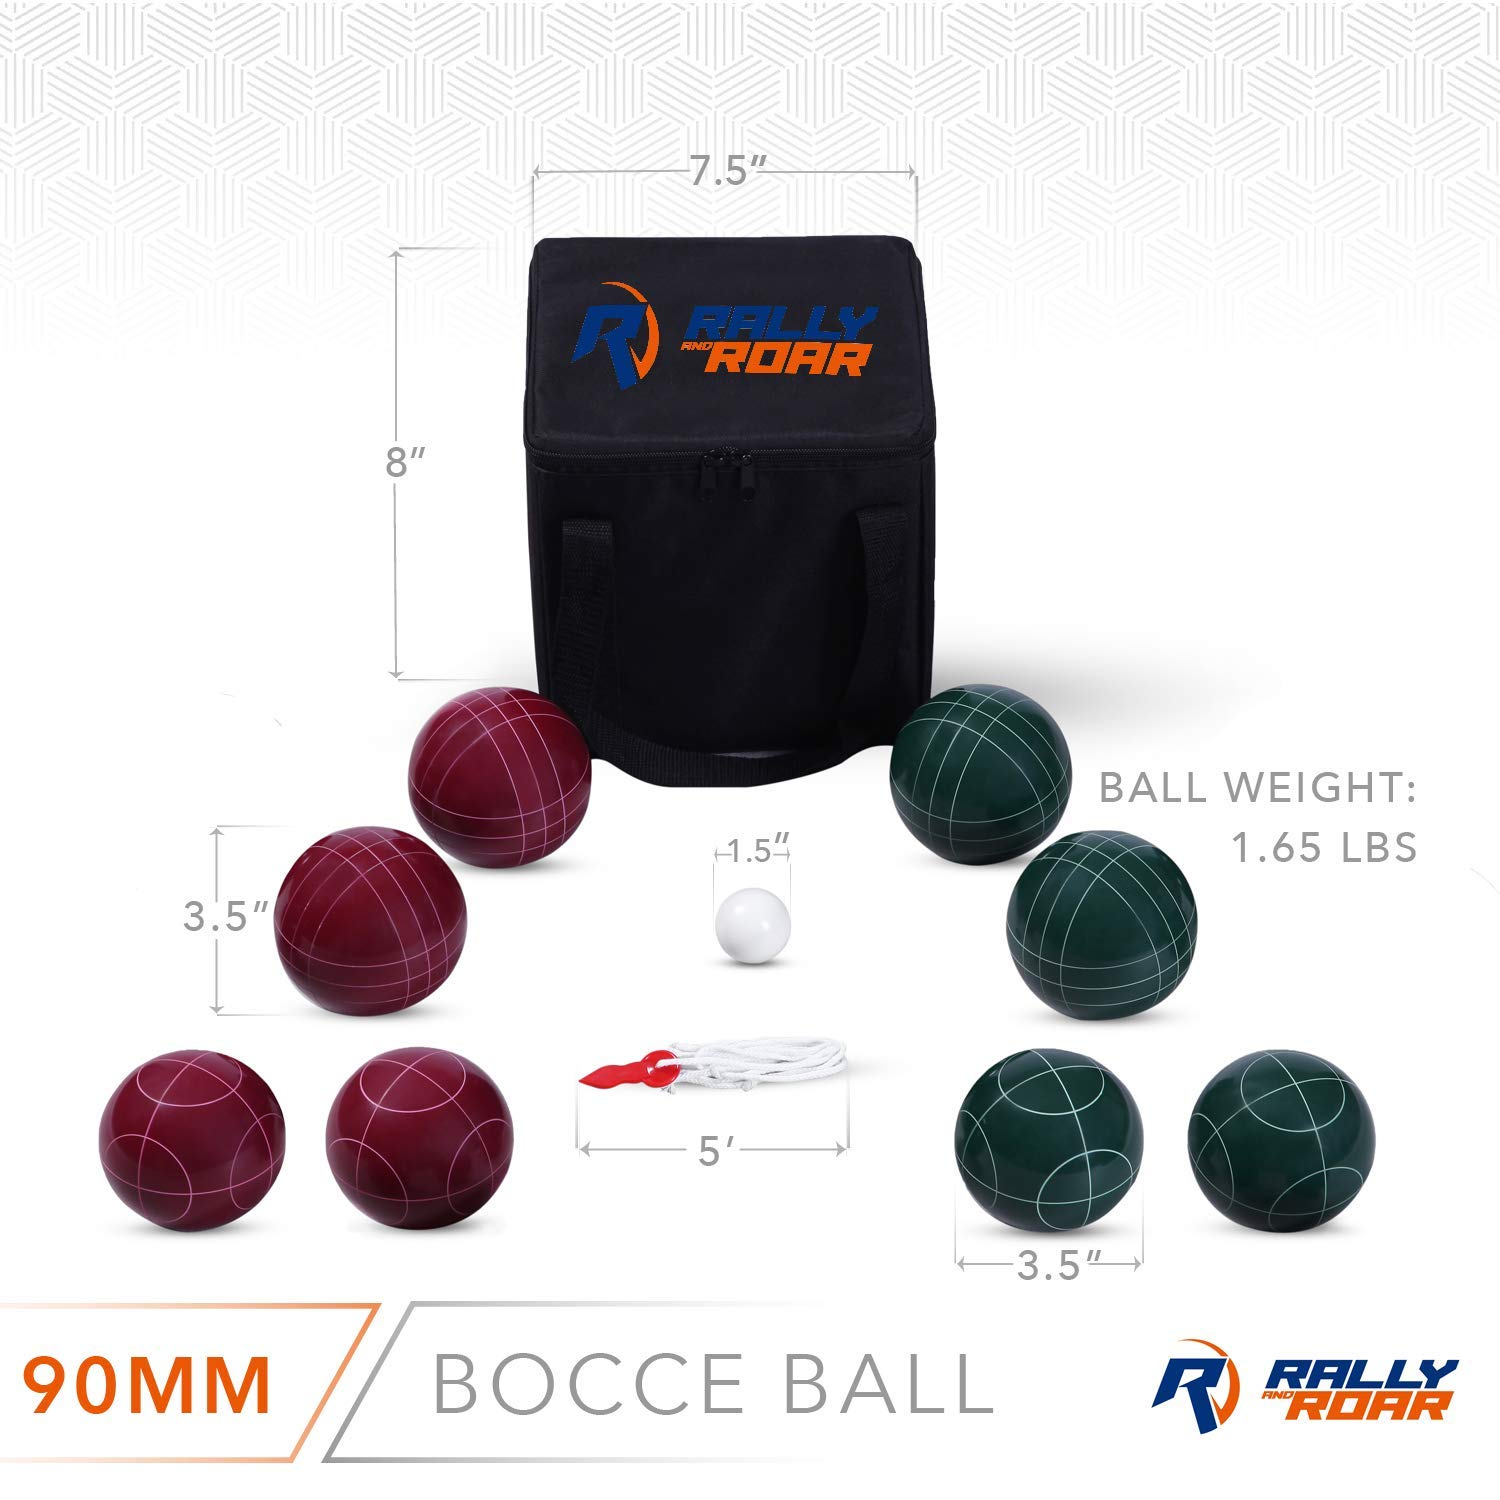 Bocce Ball Set Classic 90MM /& Premium 100MM Options and Kids Complete Bocce Yard and Lawn Games with Carrying and Storage Case by D1S//Rally /& Roar Renewed Families Fun Outdoor Bocce Game for Adults